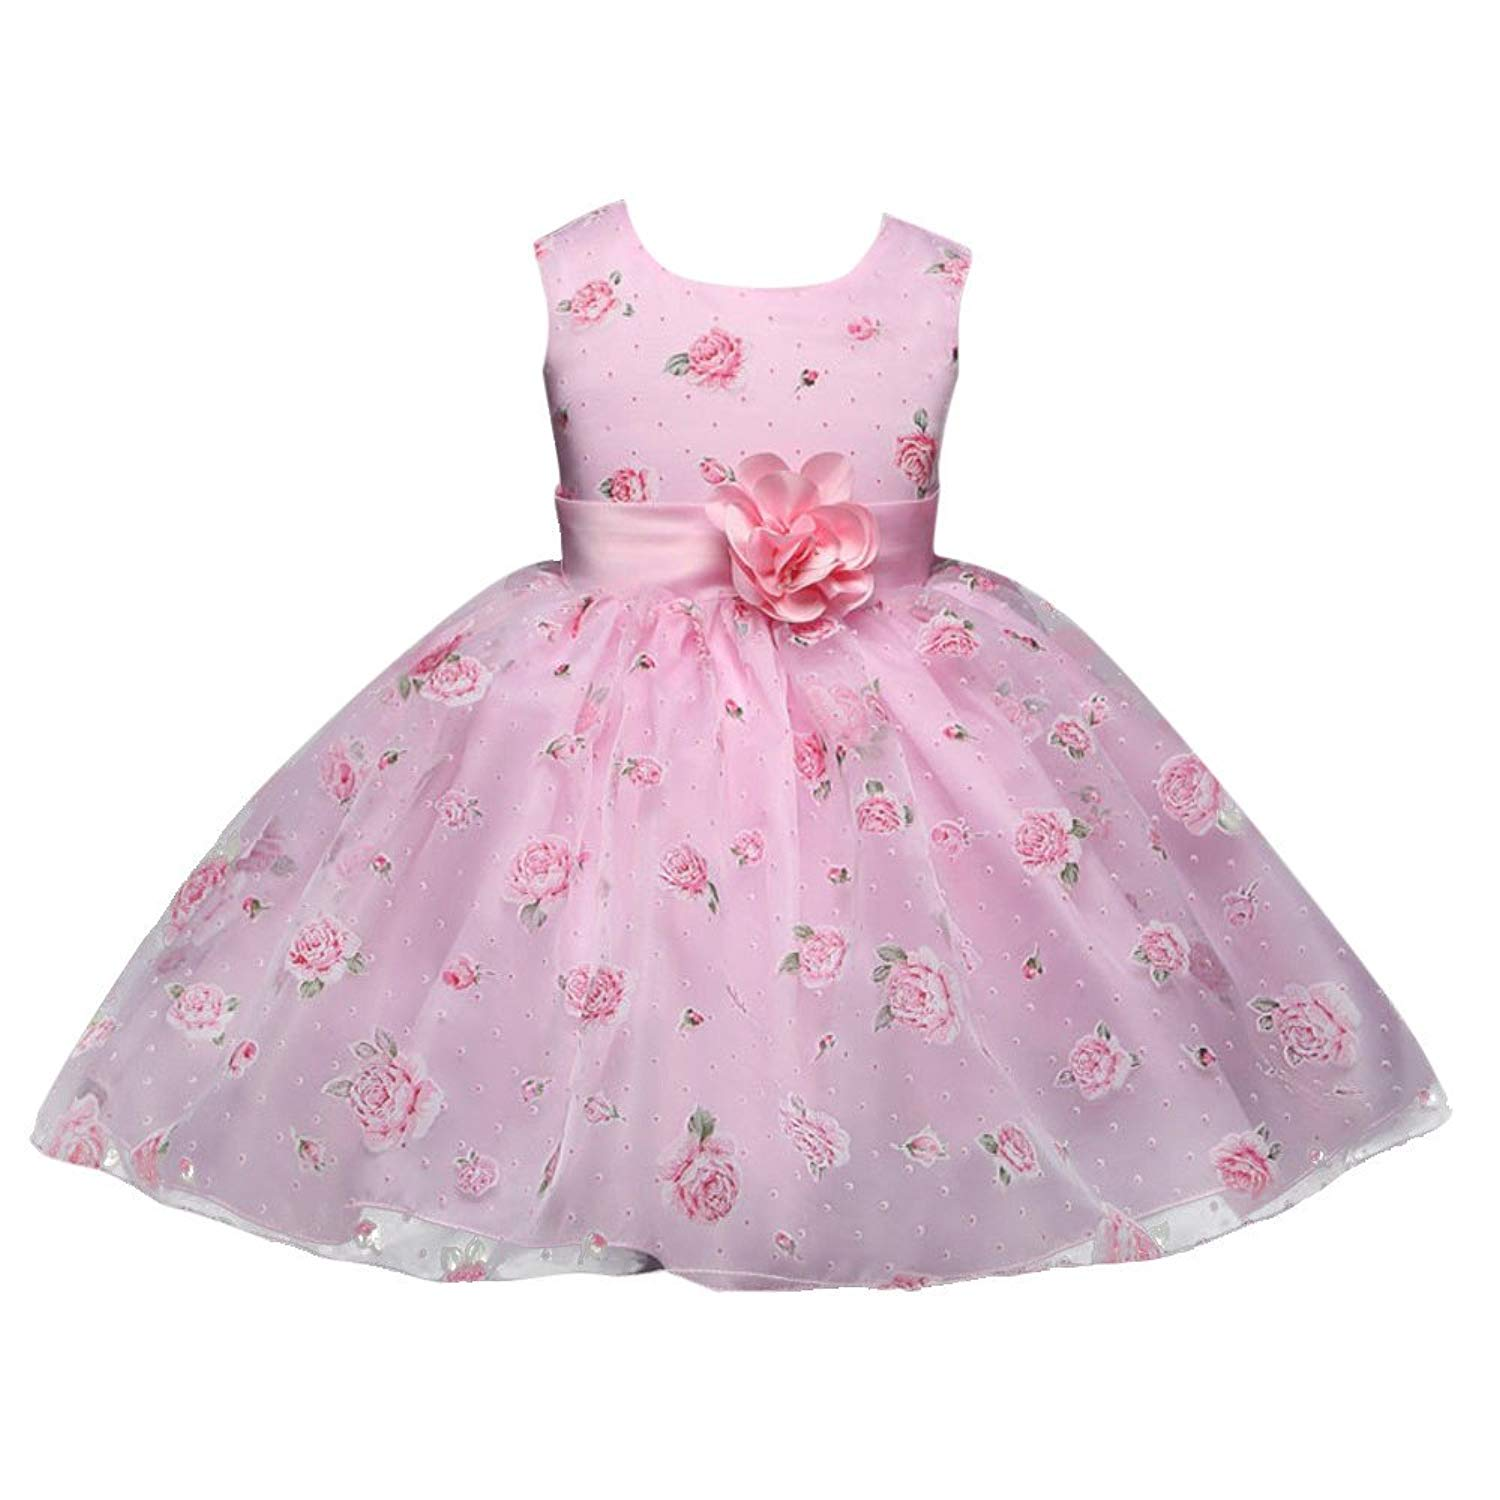 0ae229844 Get Quotations · Baby Baptism Dress Yamally Infant Girls Dress Christening  Party Formal Dress Summer Tutu Dress with Belt